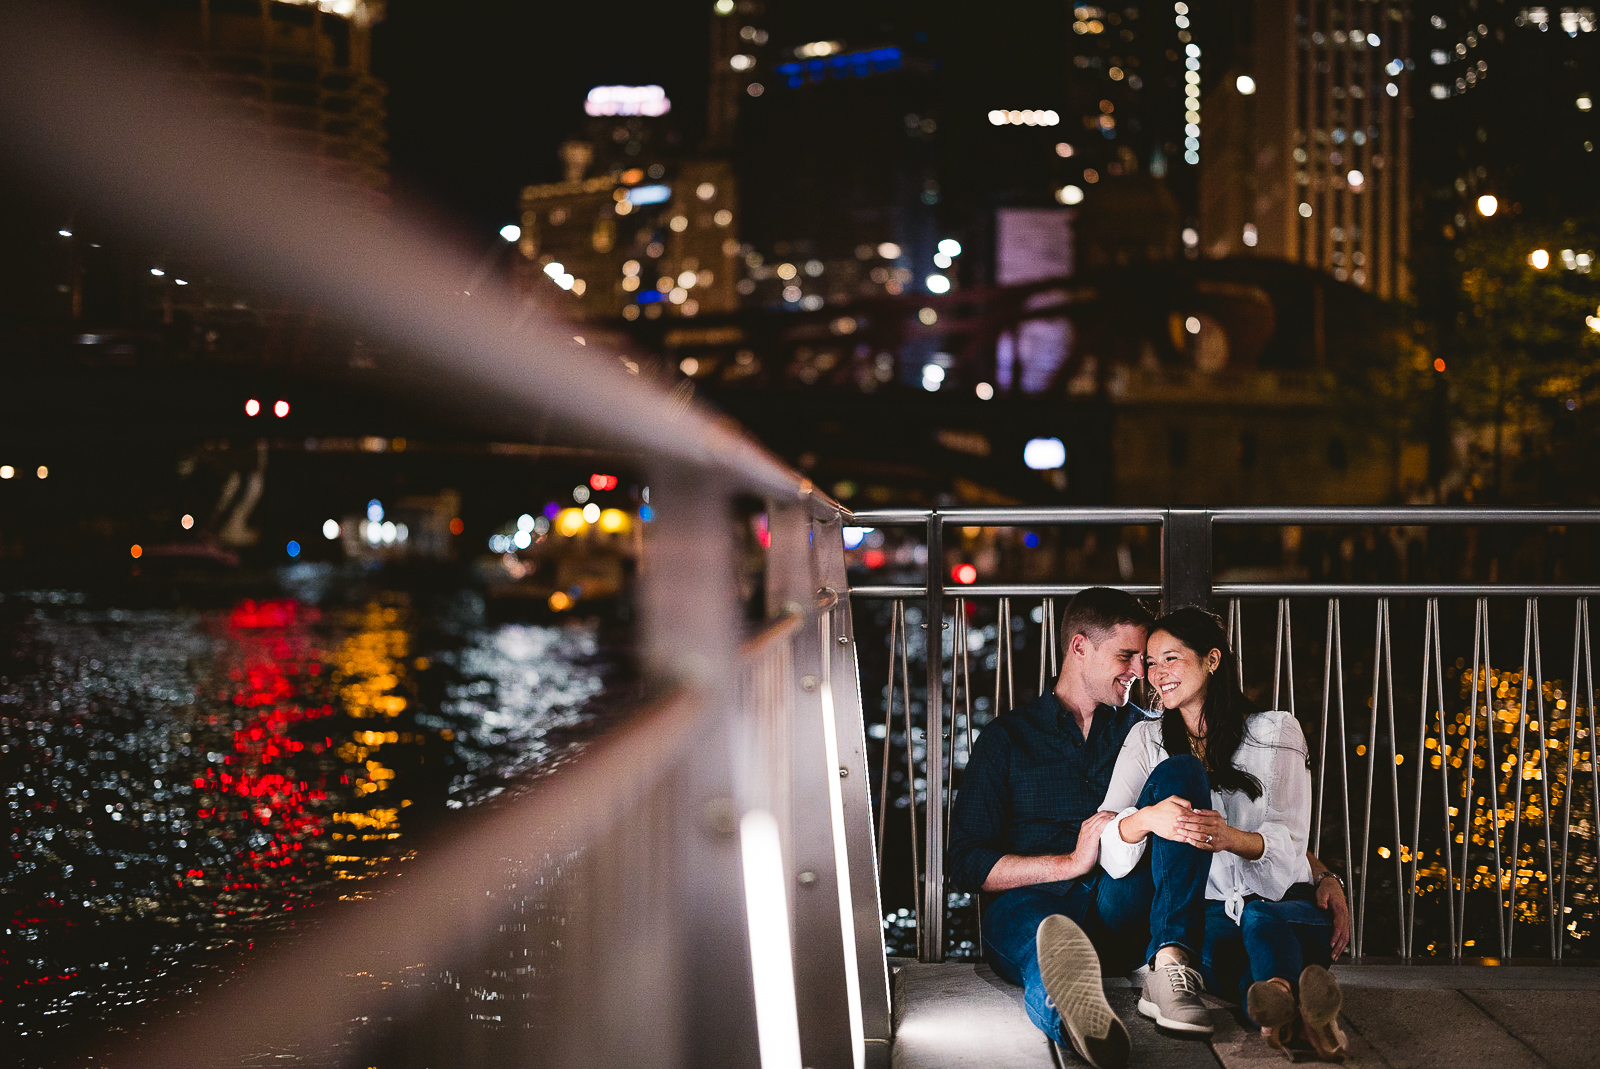 04 night engagement photos in chicago - Alex + Jim // Sunset Engagement Session